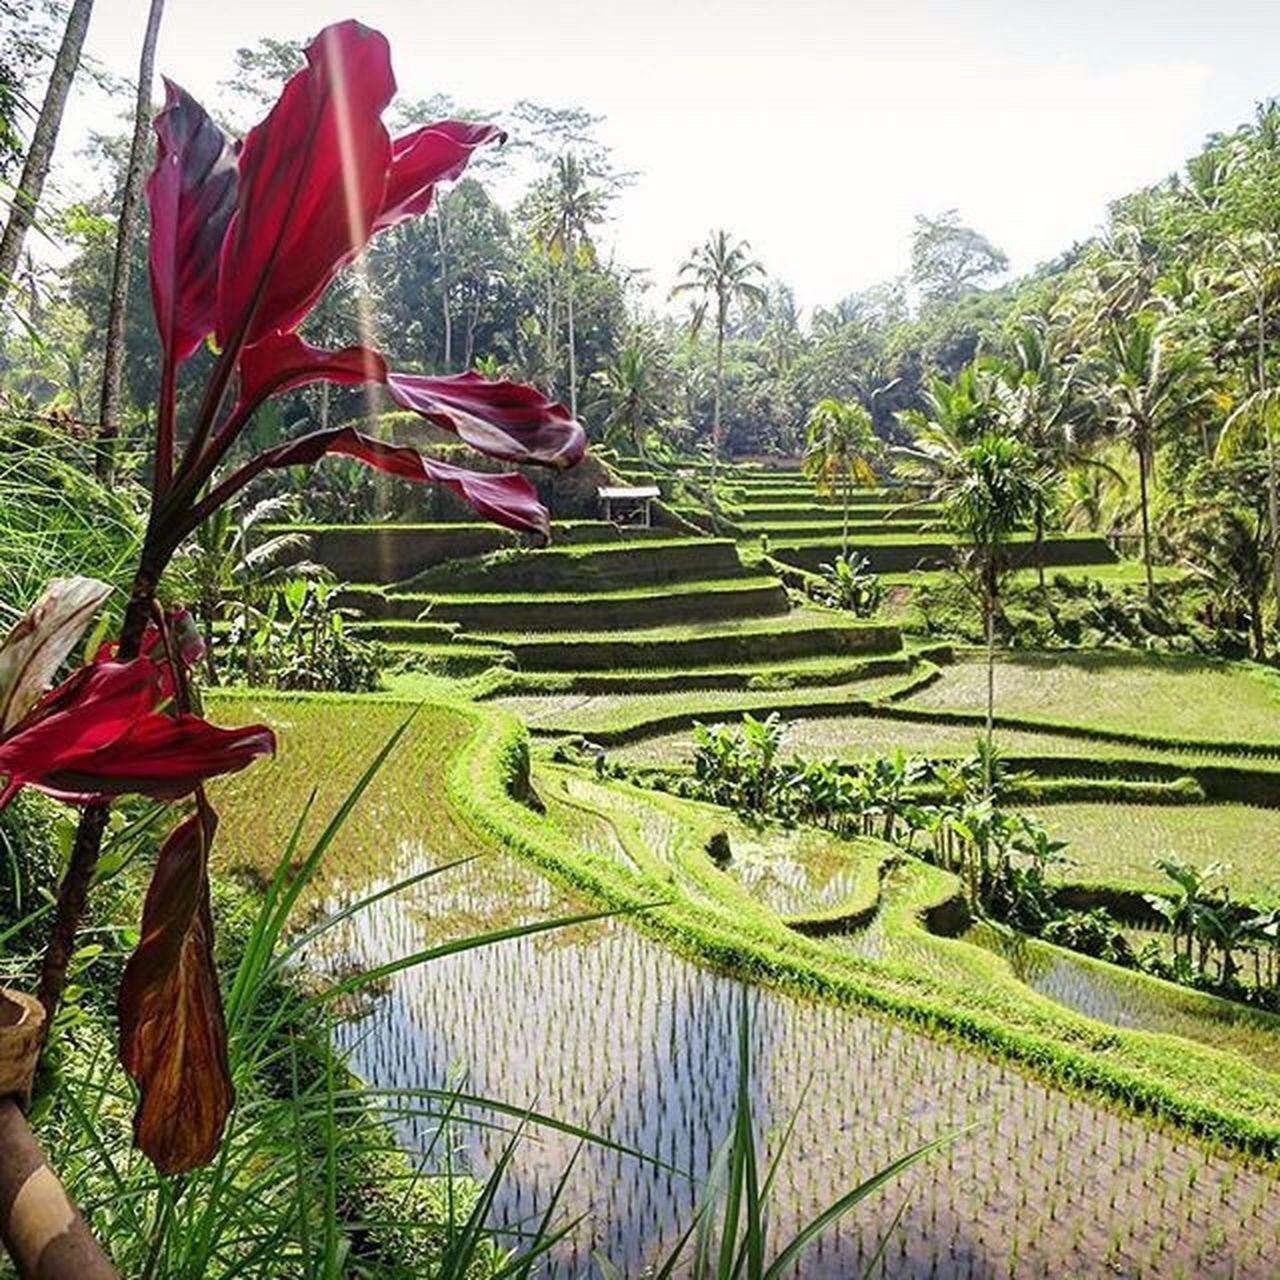 INDONESIA Indonesia_photography Agriculture Rice Paddy Growth Landscape Outdoors Scenics Terraced Field Beauty In Nature Sky Day Tree No People Miles Away Travel Photography Travelling Bali Bali, Indonesia Balinese Ubud Ubud, Bali